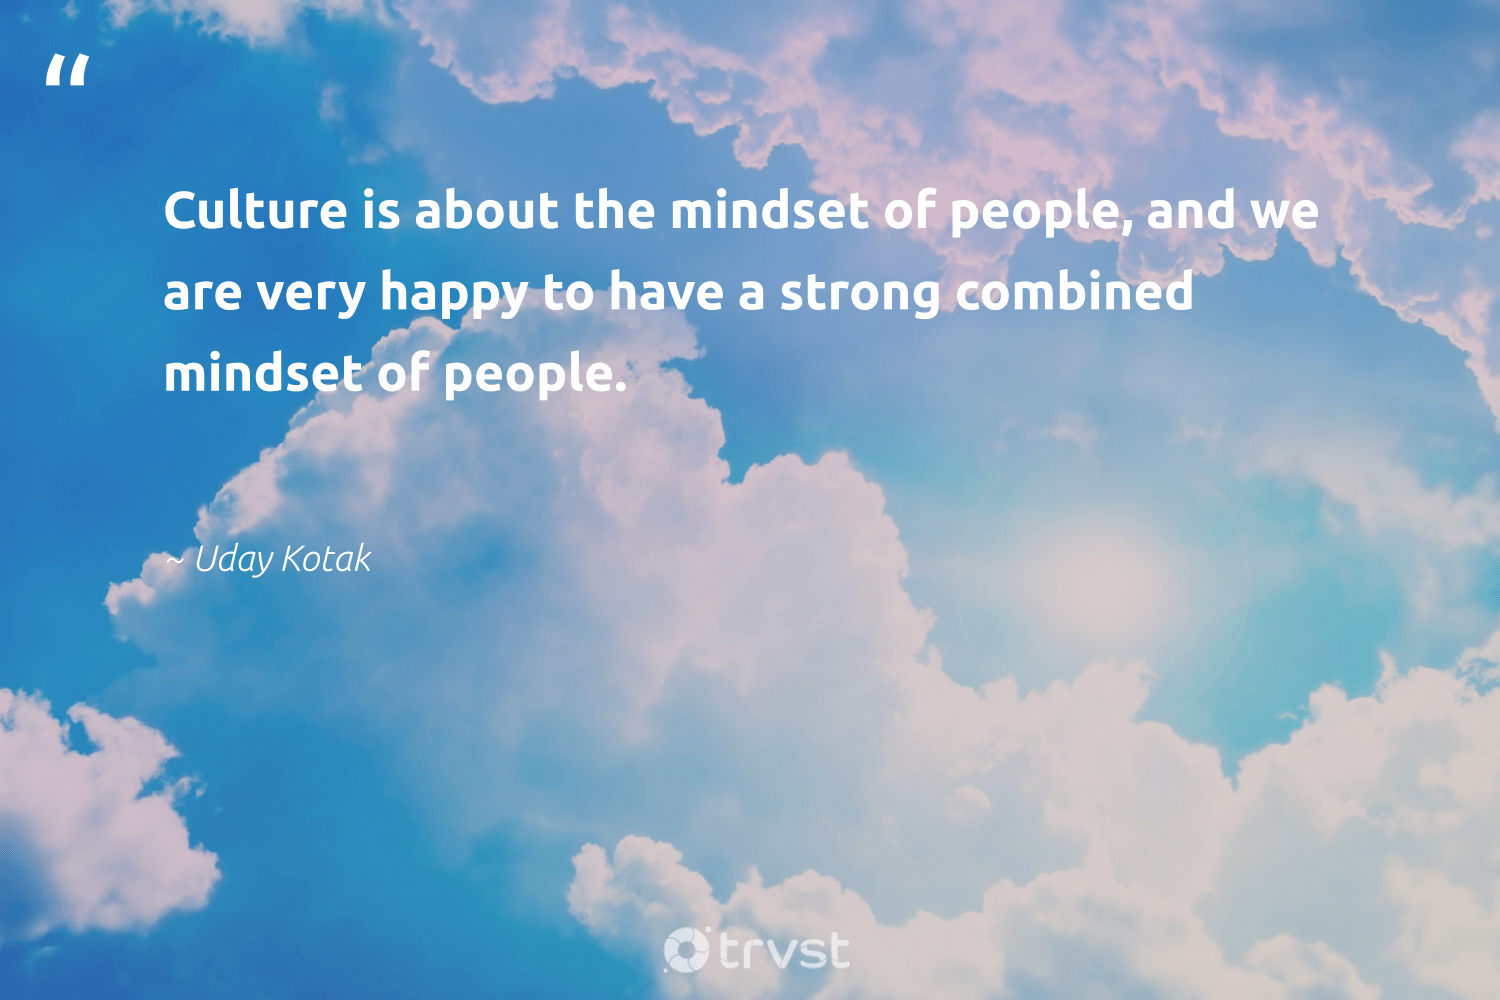 """""""Culture is about the mindset of people, and we are very happy to have a strong combined mindset of people.""""  - Uday Kotak #trvst #quotes #mindset #happy #meditate #health #togetherwecan #beinspired #creativemindset #changemakers #begreat #takeaction"""